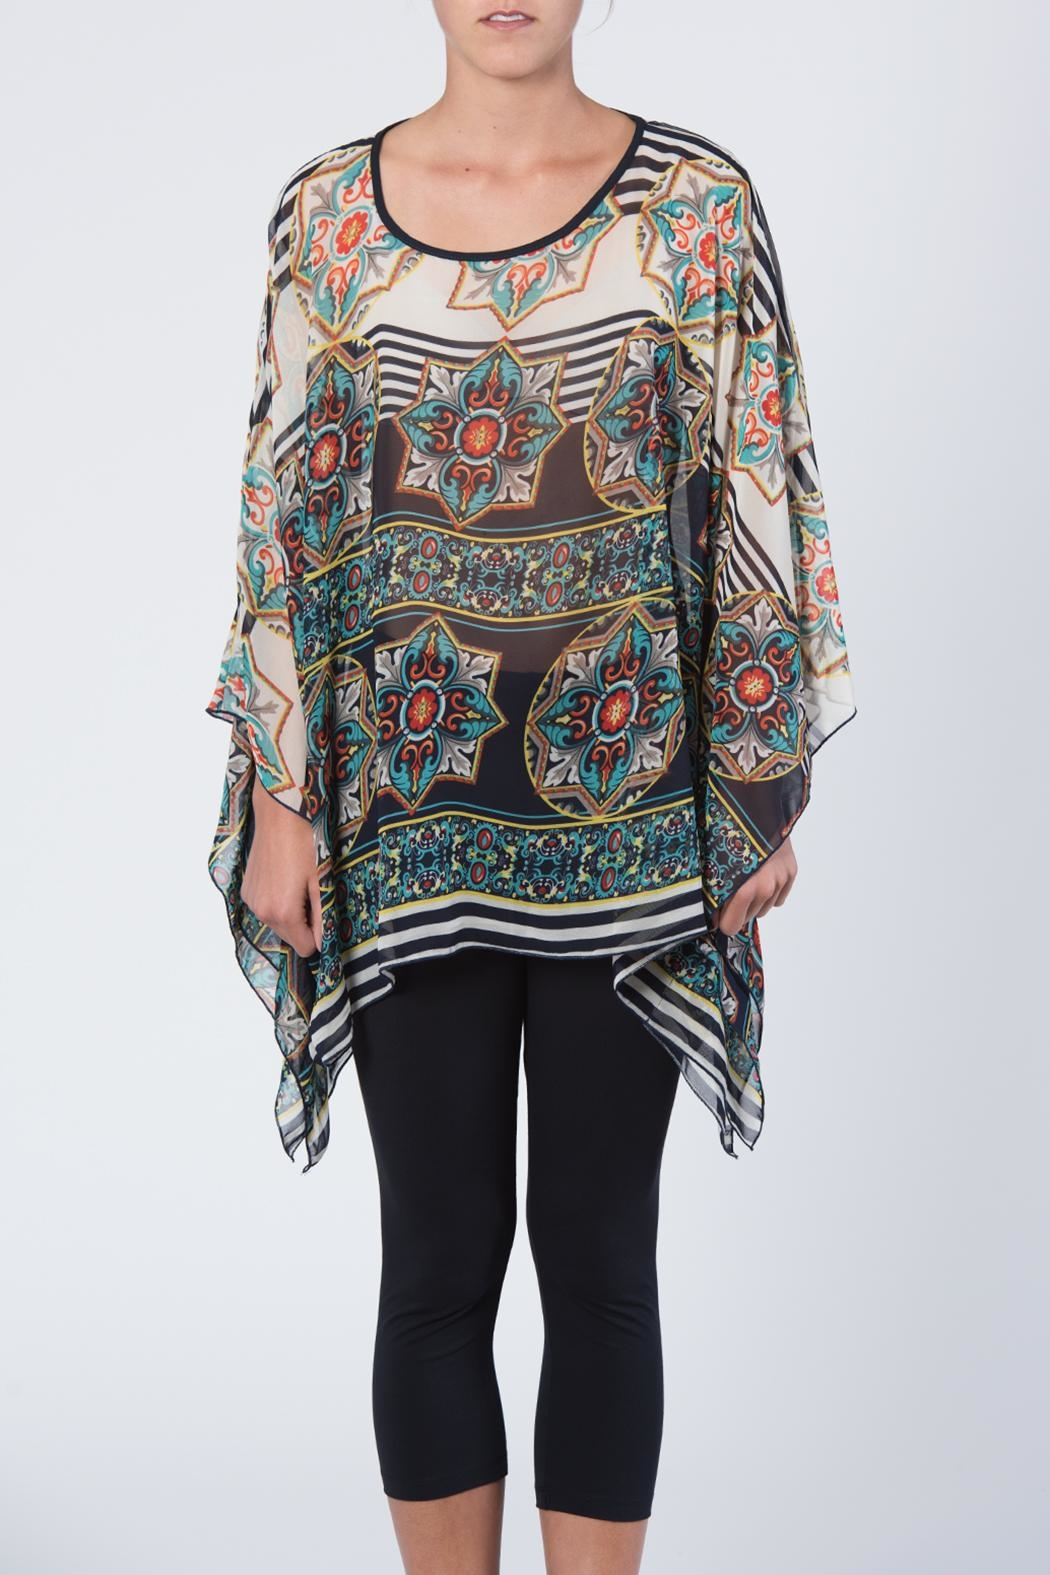 Apparel Love Multicolored Print Tunic Top - Front Cropped Image